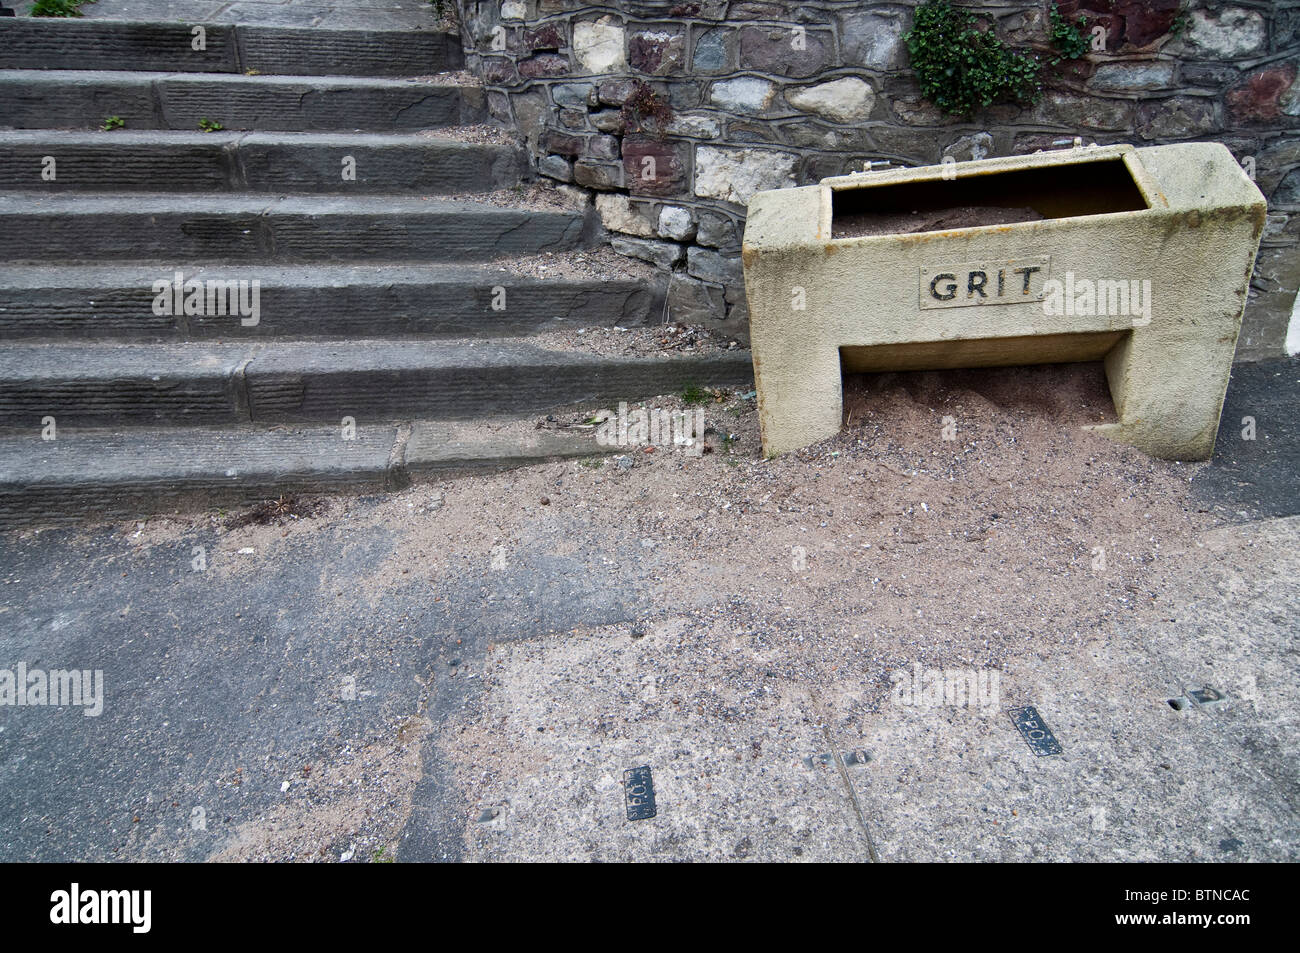 A container of grit used to keep sidewalks and pavements clear of ice in Bristol, UK. - Stock Image